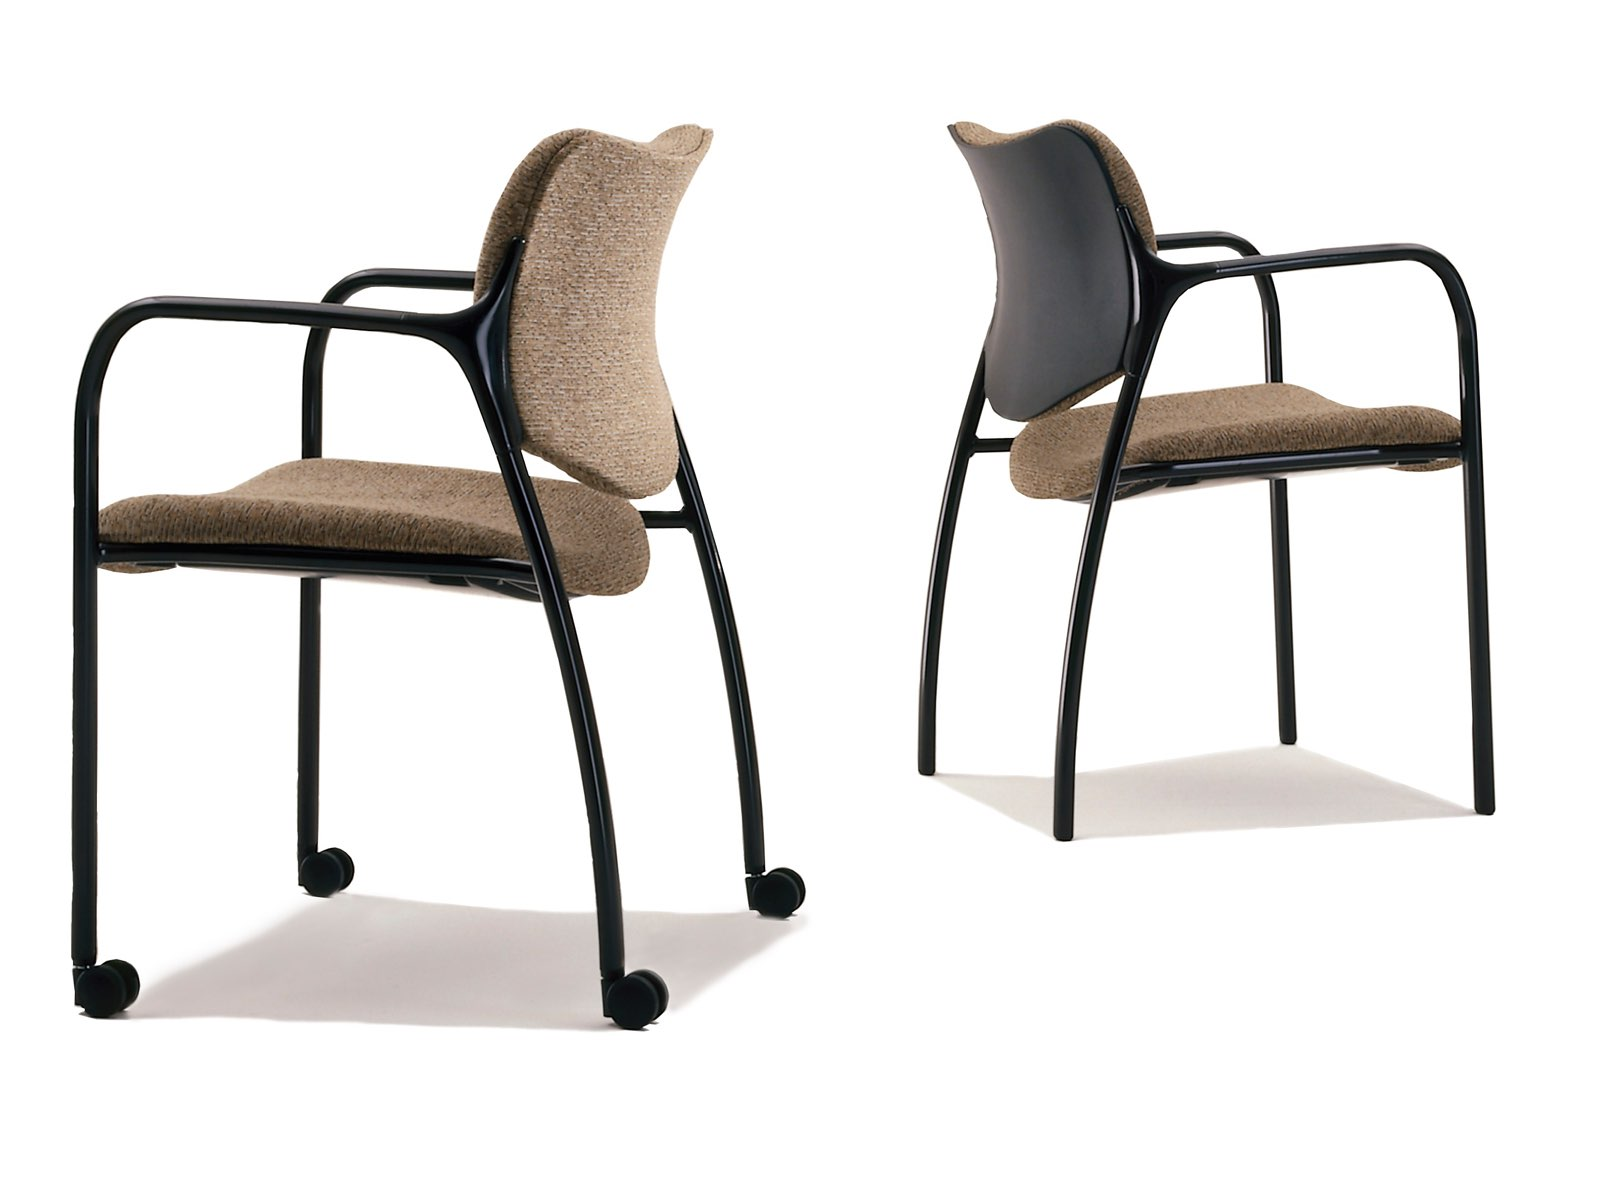 Two versions of a brown Aside Chair, one with casters and full upholstery and one with a partially upholstered back.